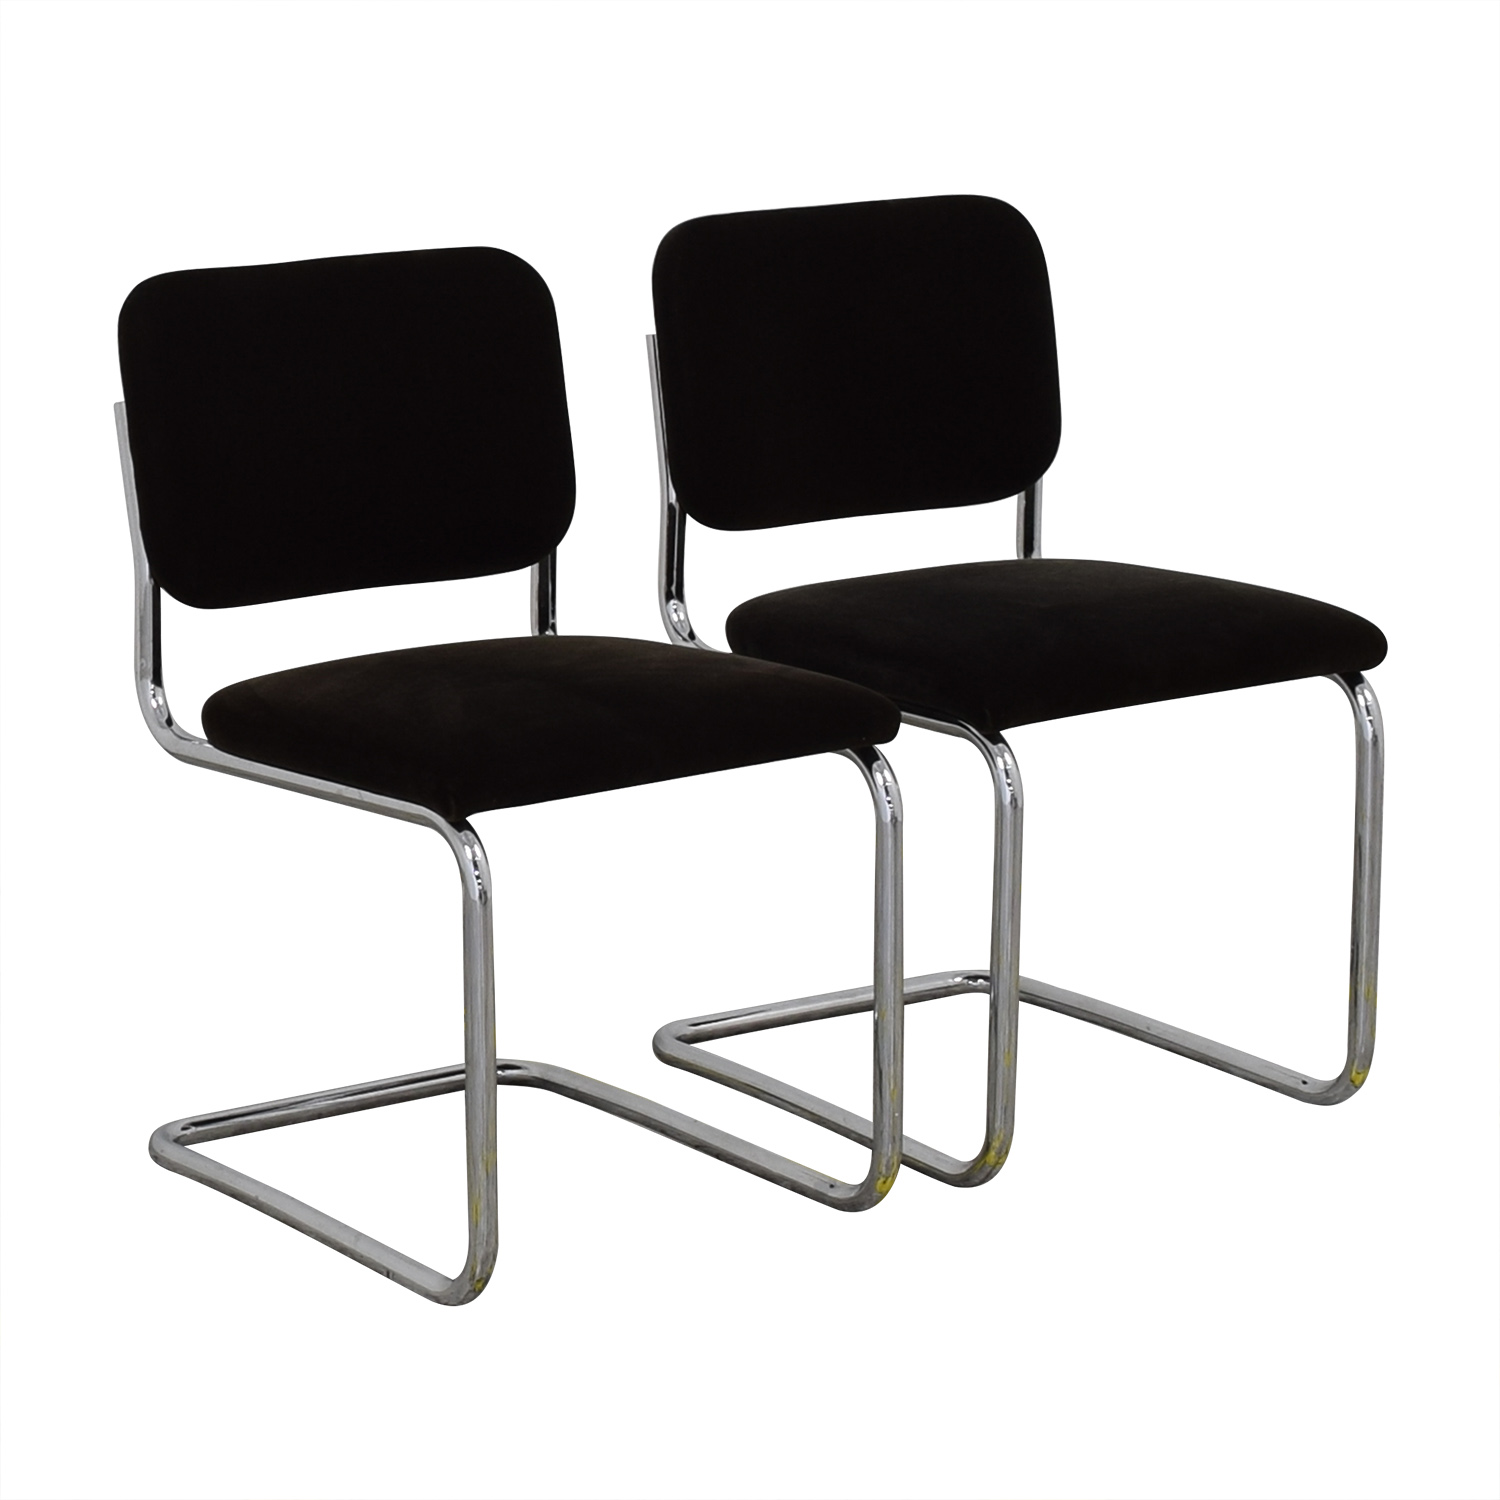 brand new 6d08b 06a42 75% OFF - Knoll Knoll Marcel Breuer Cesca Chairs / Chairs